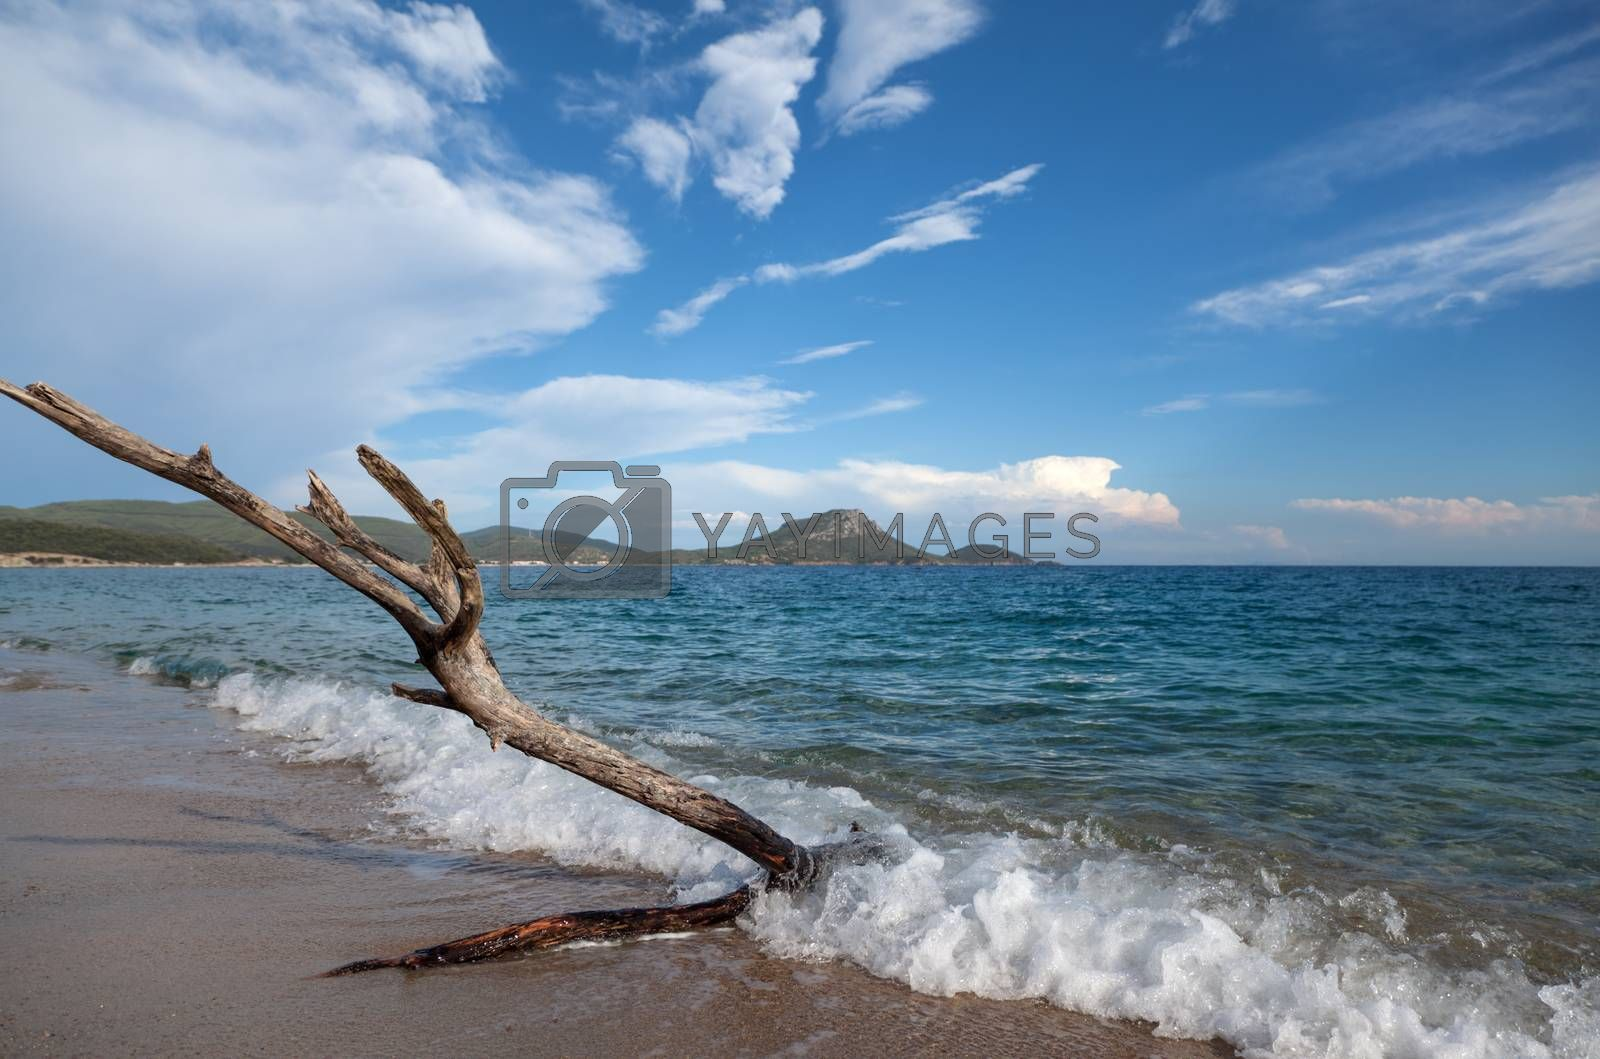 An old tree branch being tossed by the sea waves on shore.